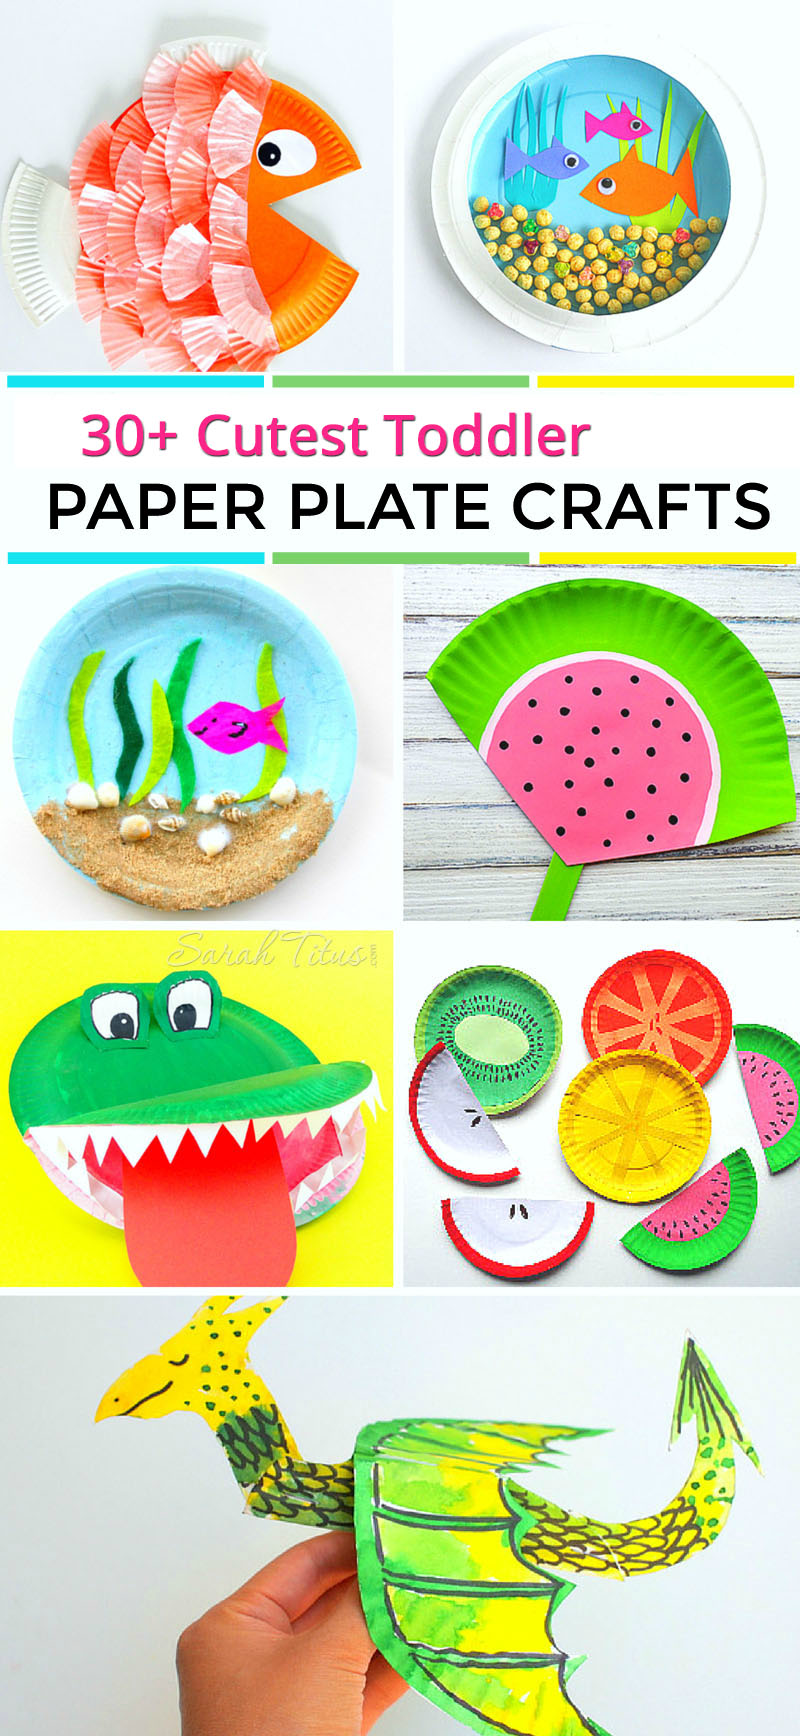 30 Cutest Toddler Paper Plate Crafts Sarah Titus